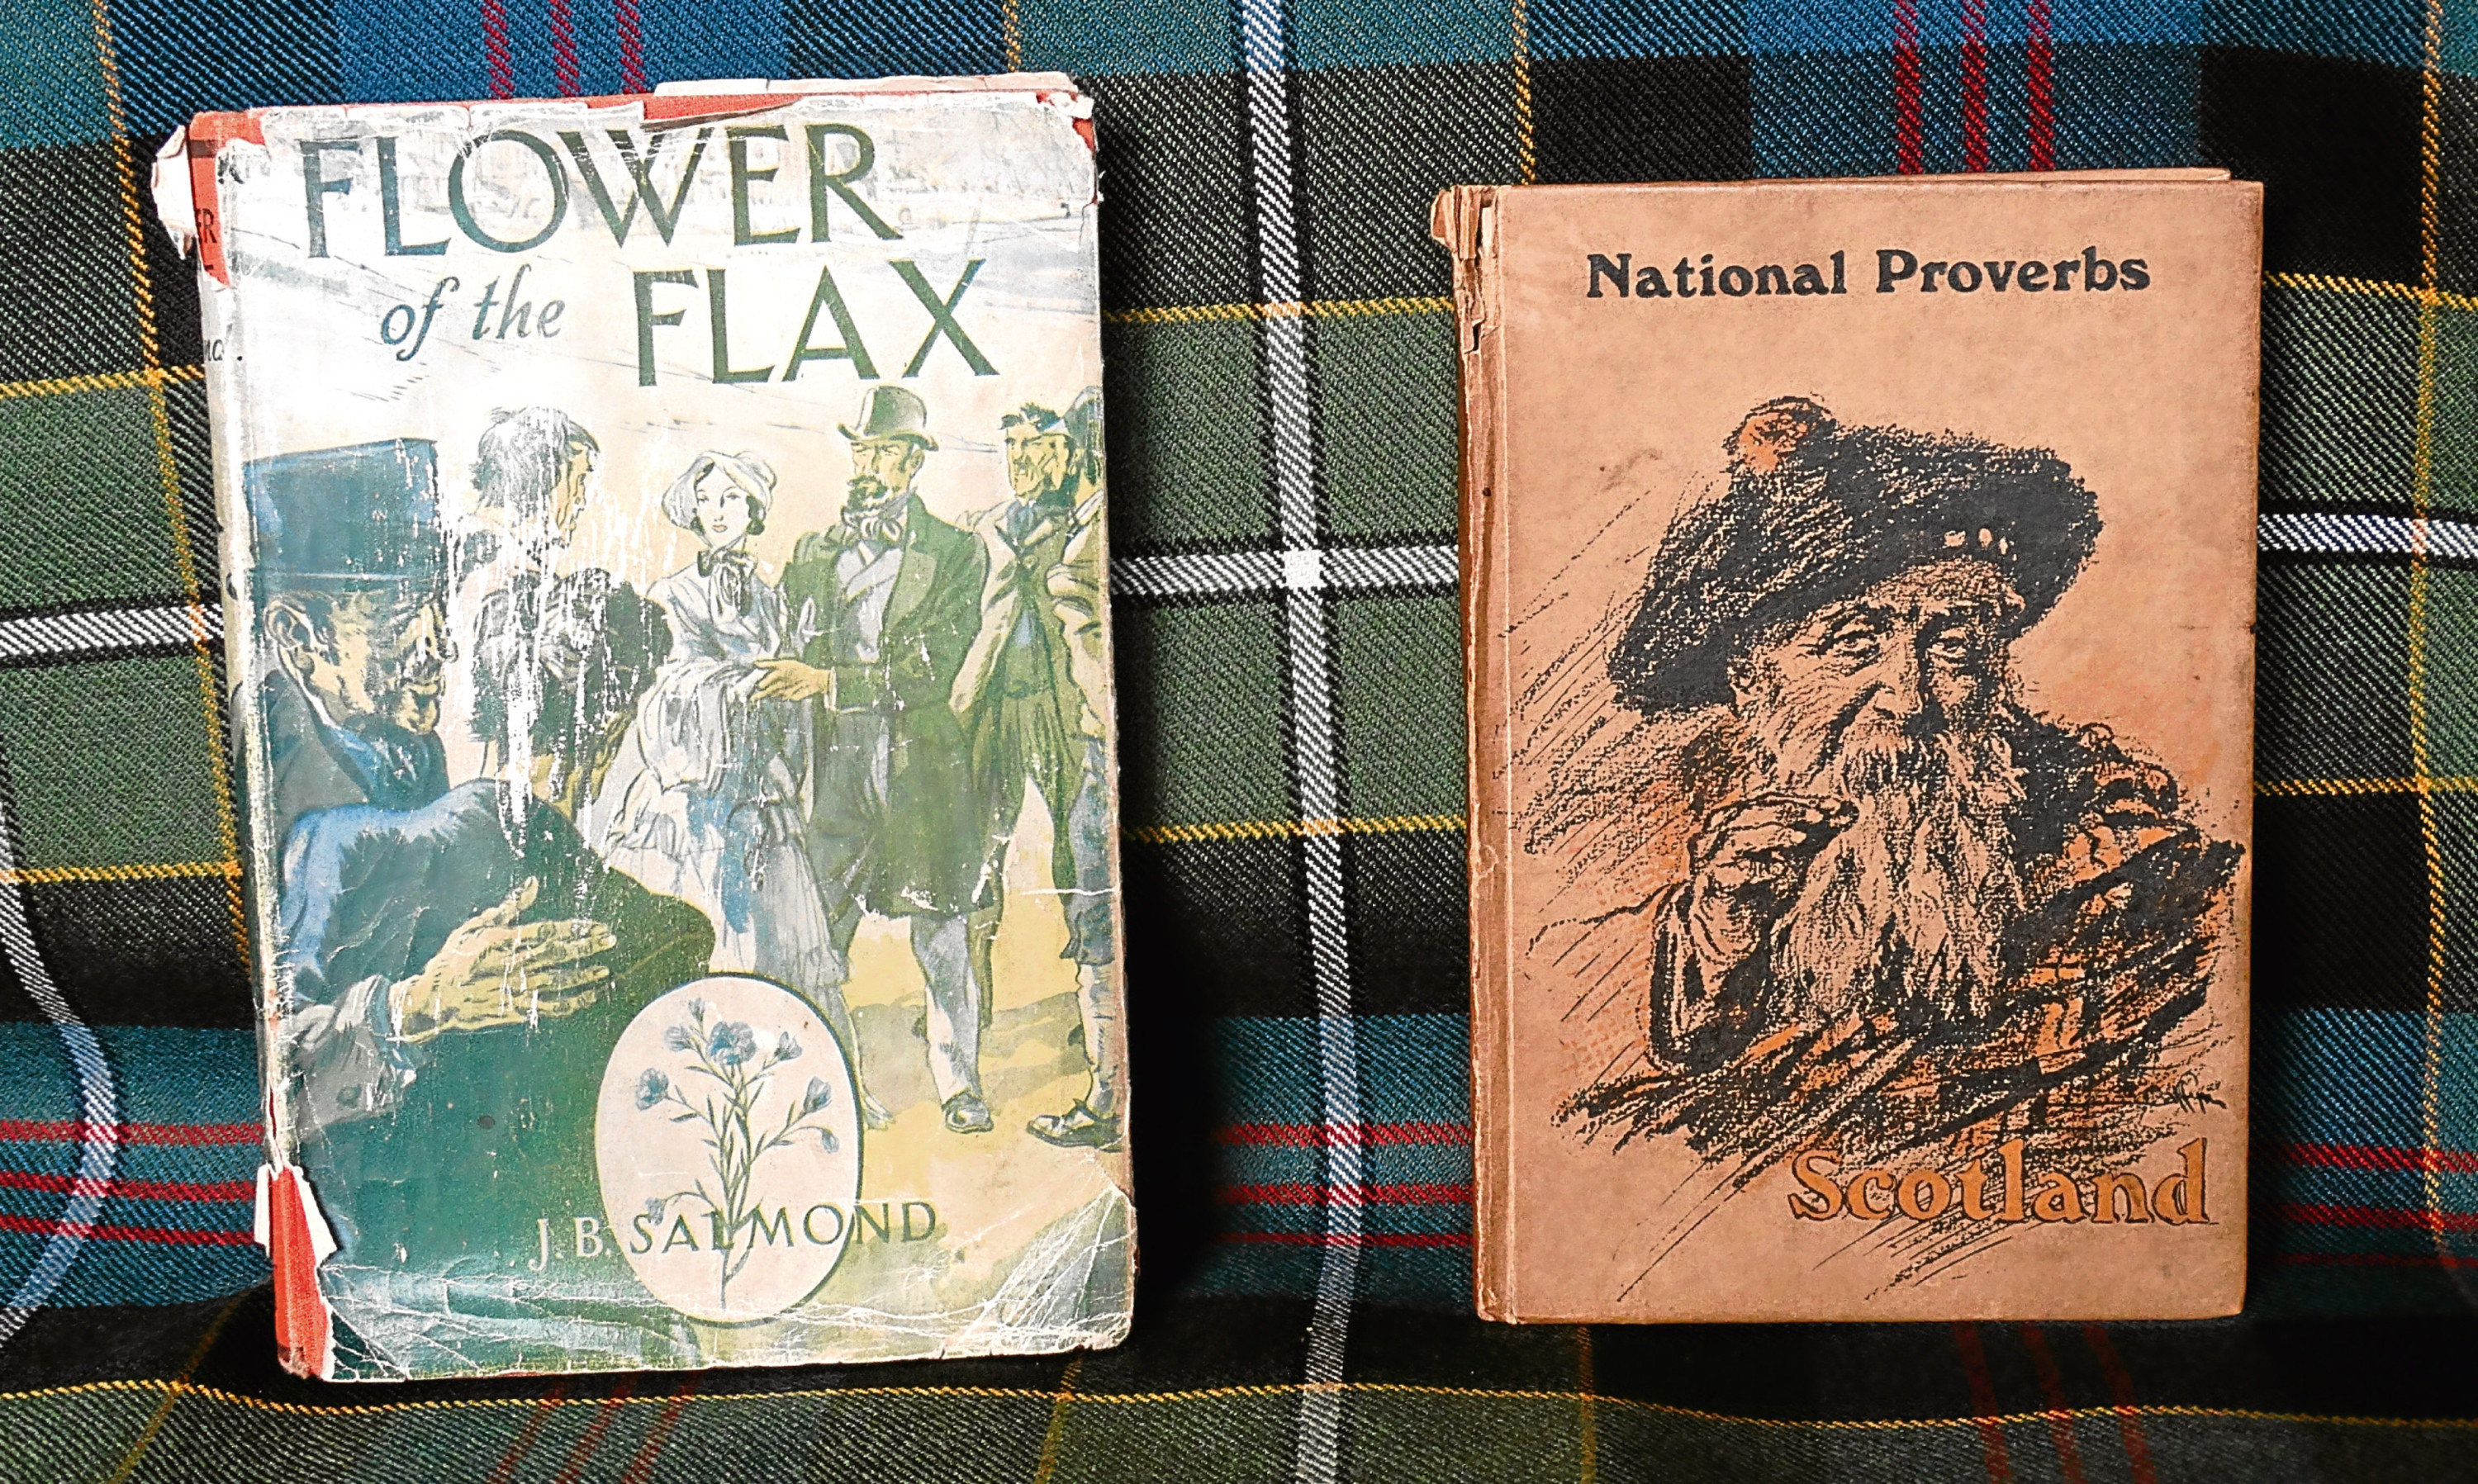 New additions to Anguss library, though not all the proverbs are perhaps suited to the modern era.